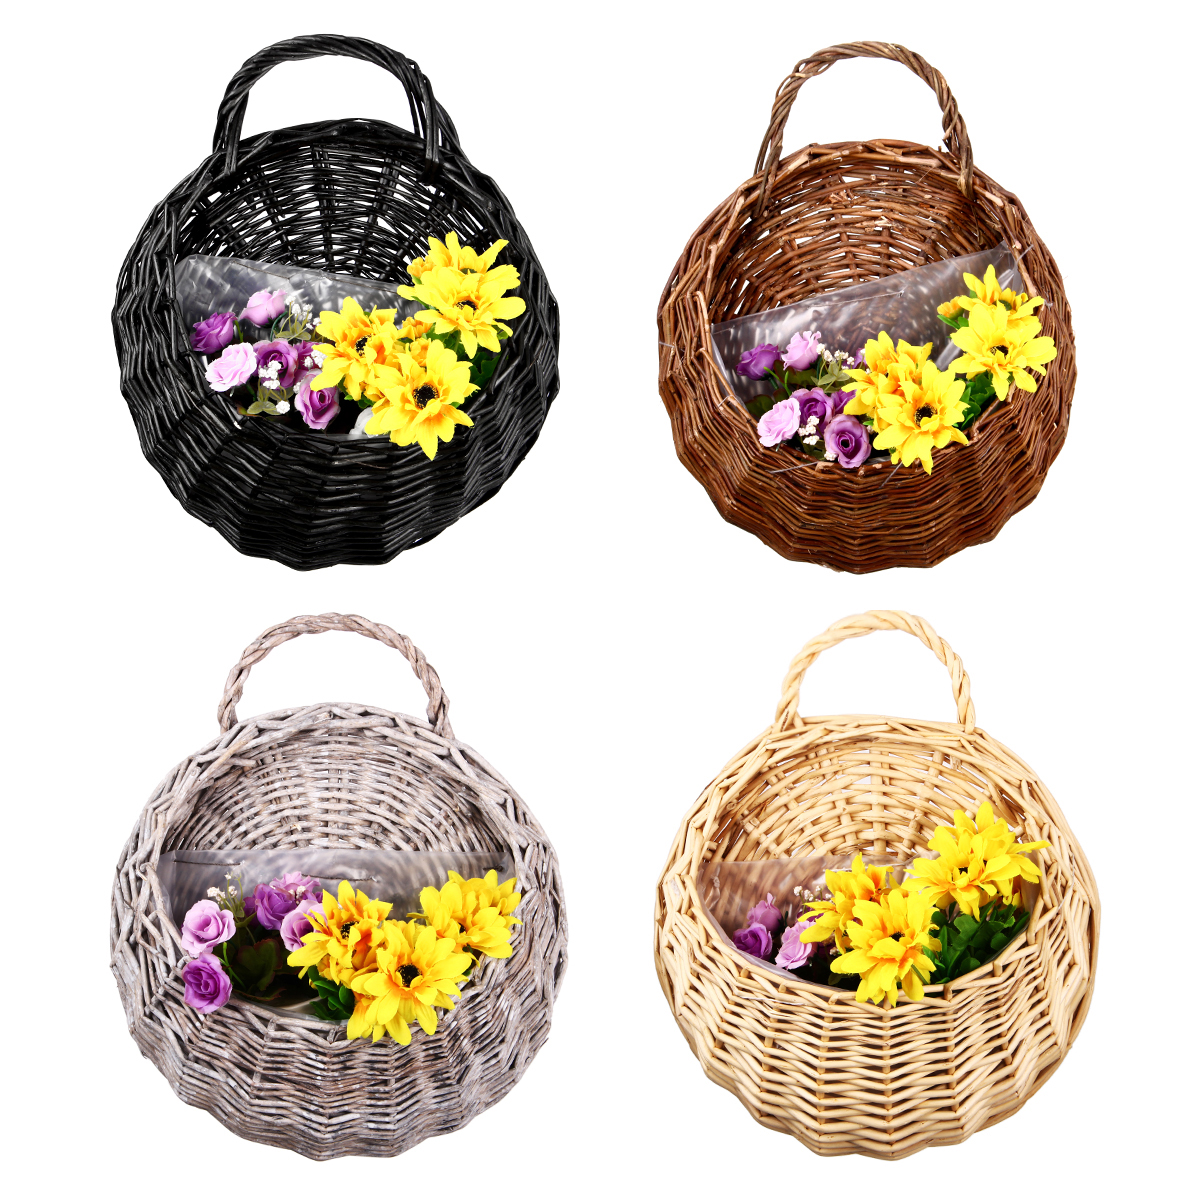 Rustic Wicker Rattan Wall Hanging Flower Baskets Pot Home ... on Decorative Wall Sconces For Flowers Hanging Baskets Delivery id=23137